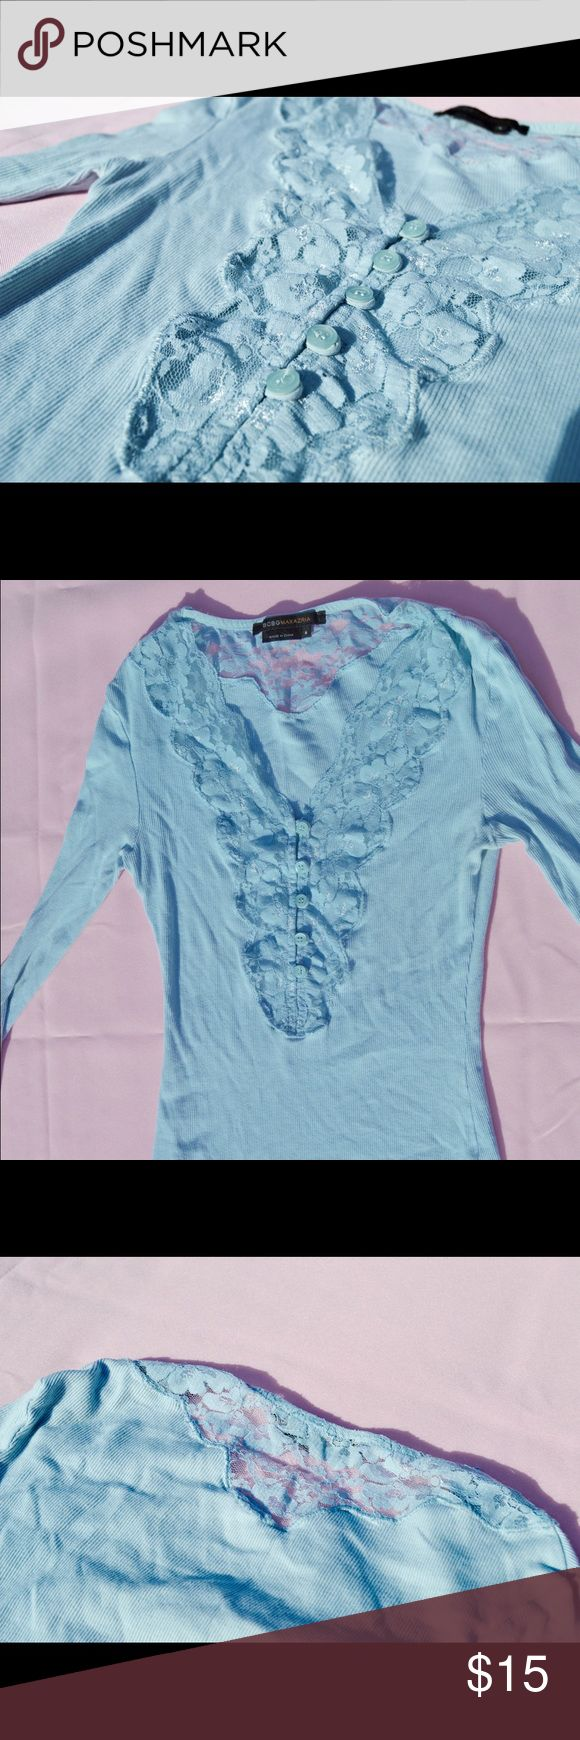 BCBG Max Azria Blue Lace Long Sleeve Shirt The details are really what make this top gorgeous - from the loop buttons to the delicate lace with a scallop trim. The deep v underneath the lace gives it the perfect edge! BCBGMaxAzria Tops